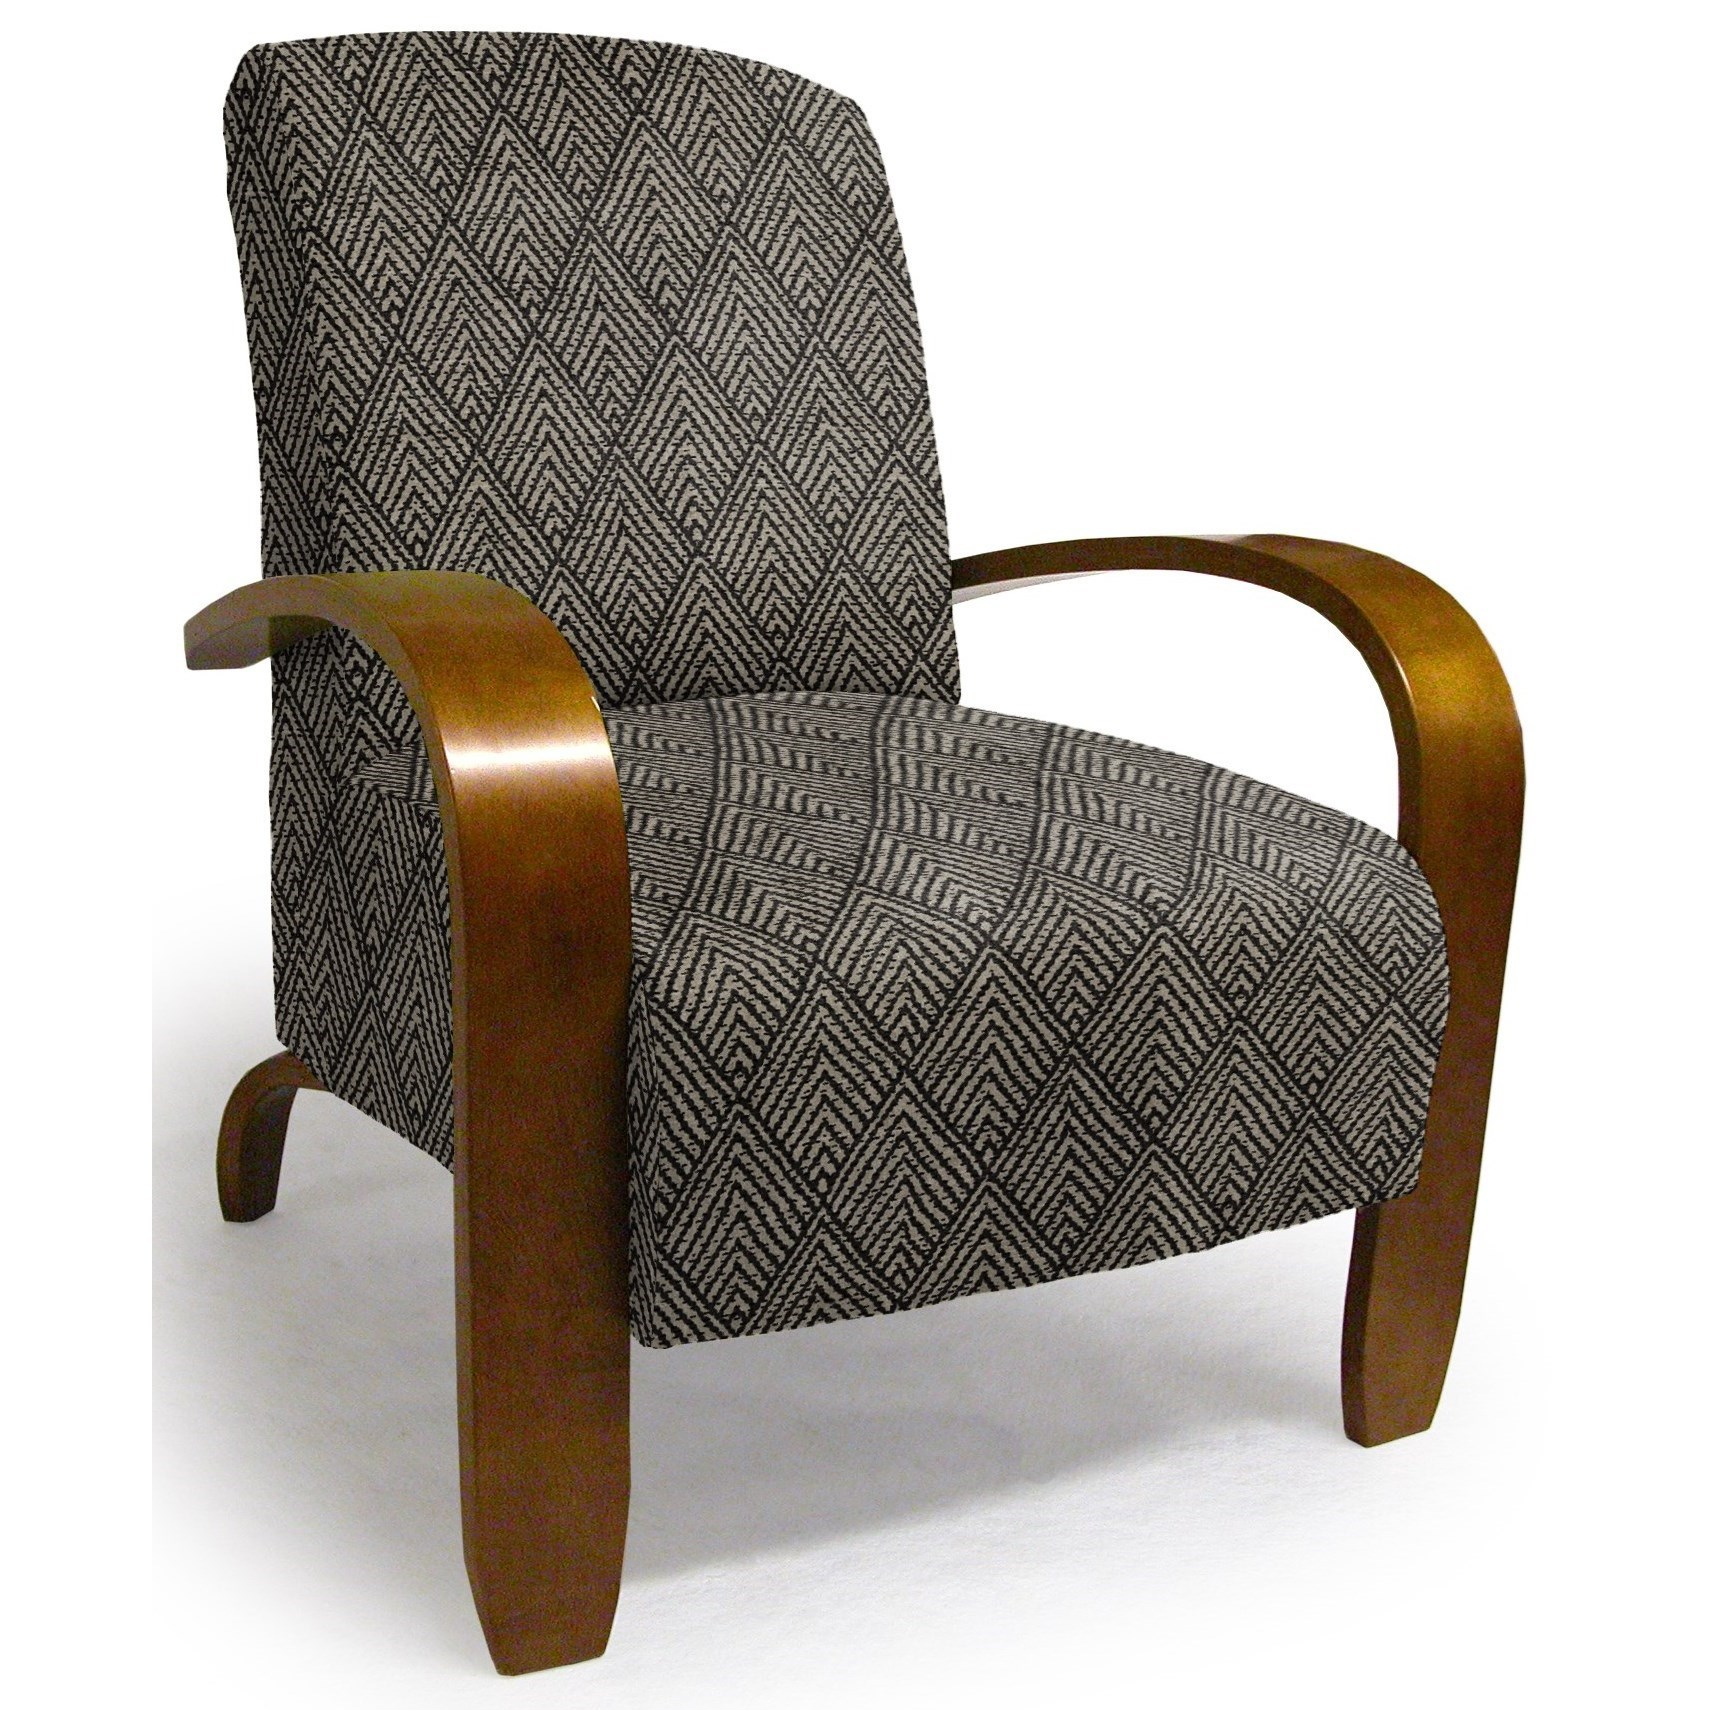 Best Home Furnishings Chairs - Accent Maravu Exposed Wood Accent Chair - Item Number: 3800-31153